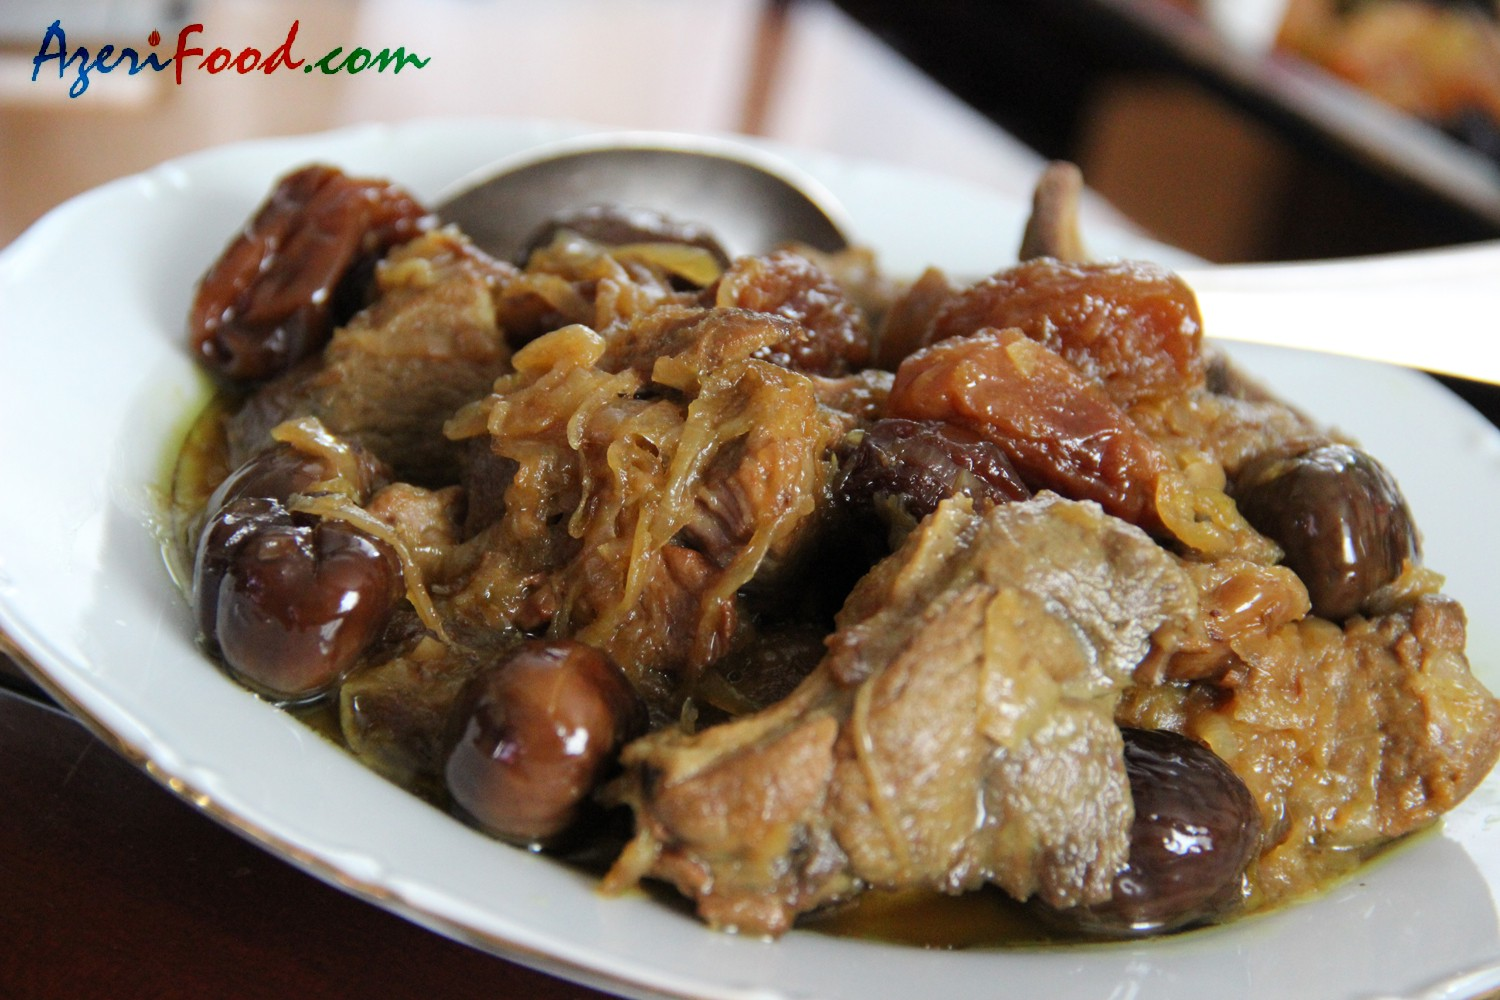 Lamb stew with chestnuts and dried fruit